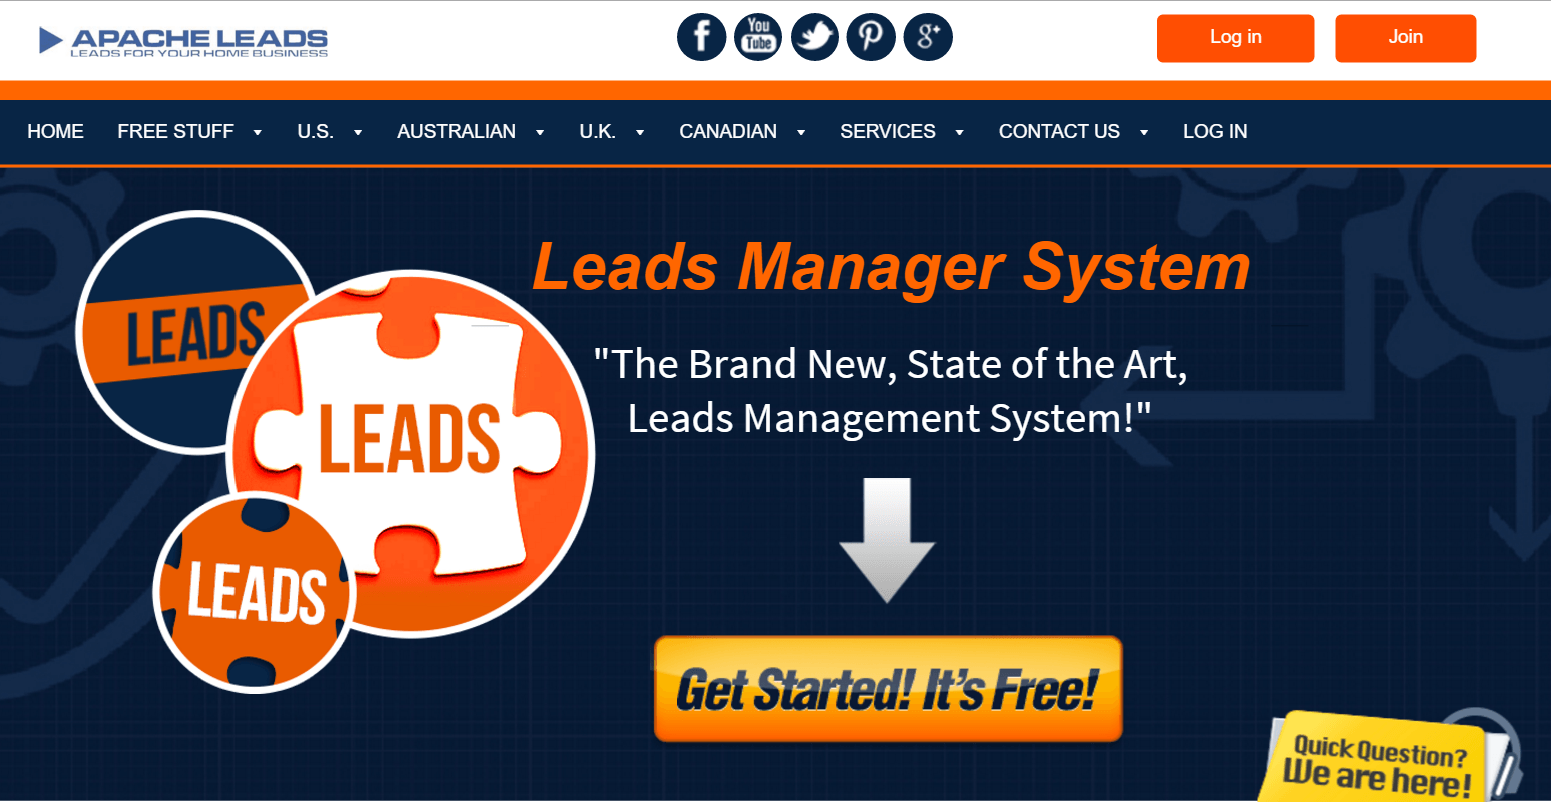 apacheleads - the leads manager system